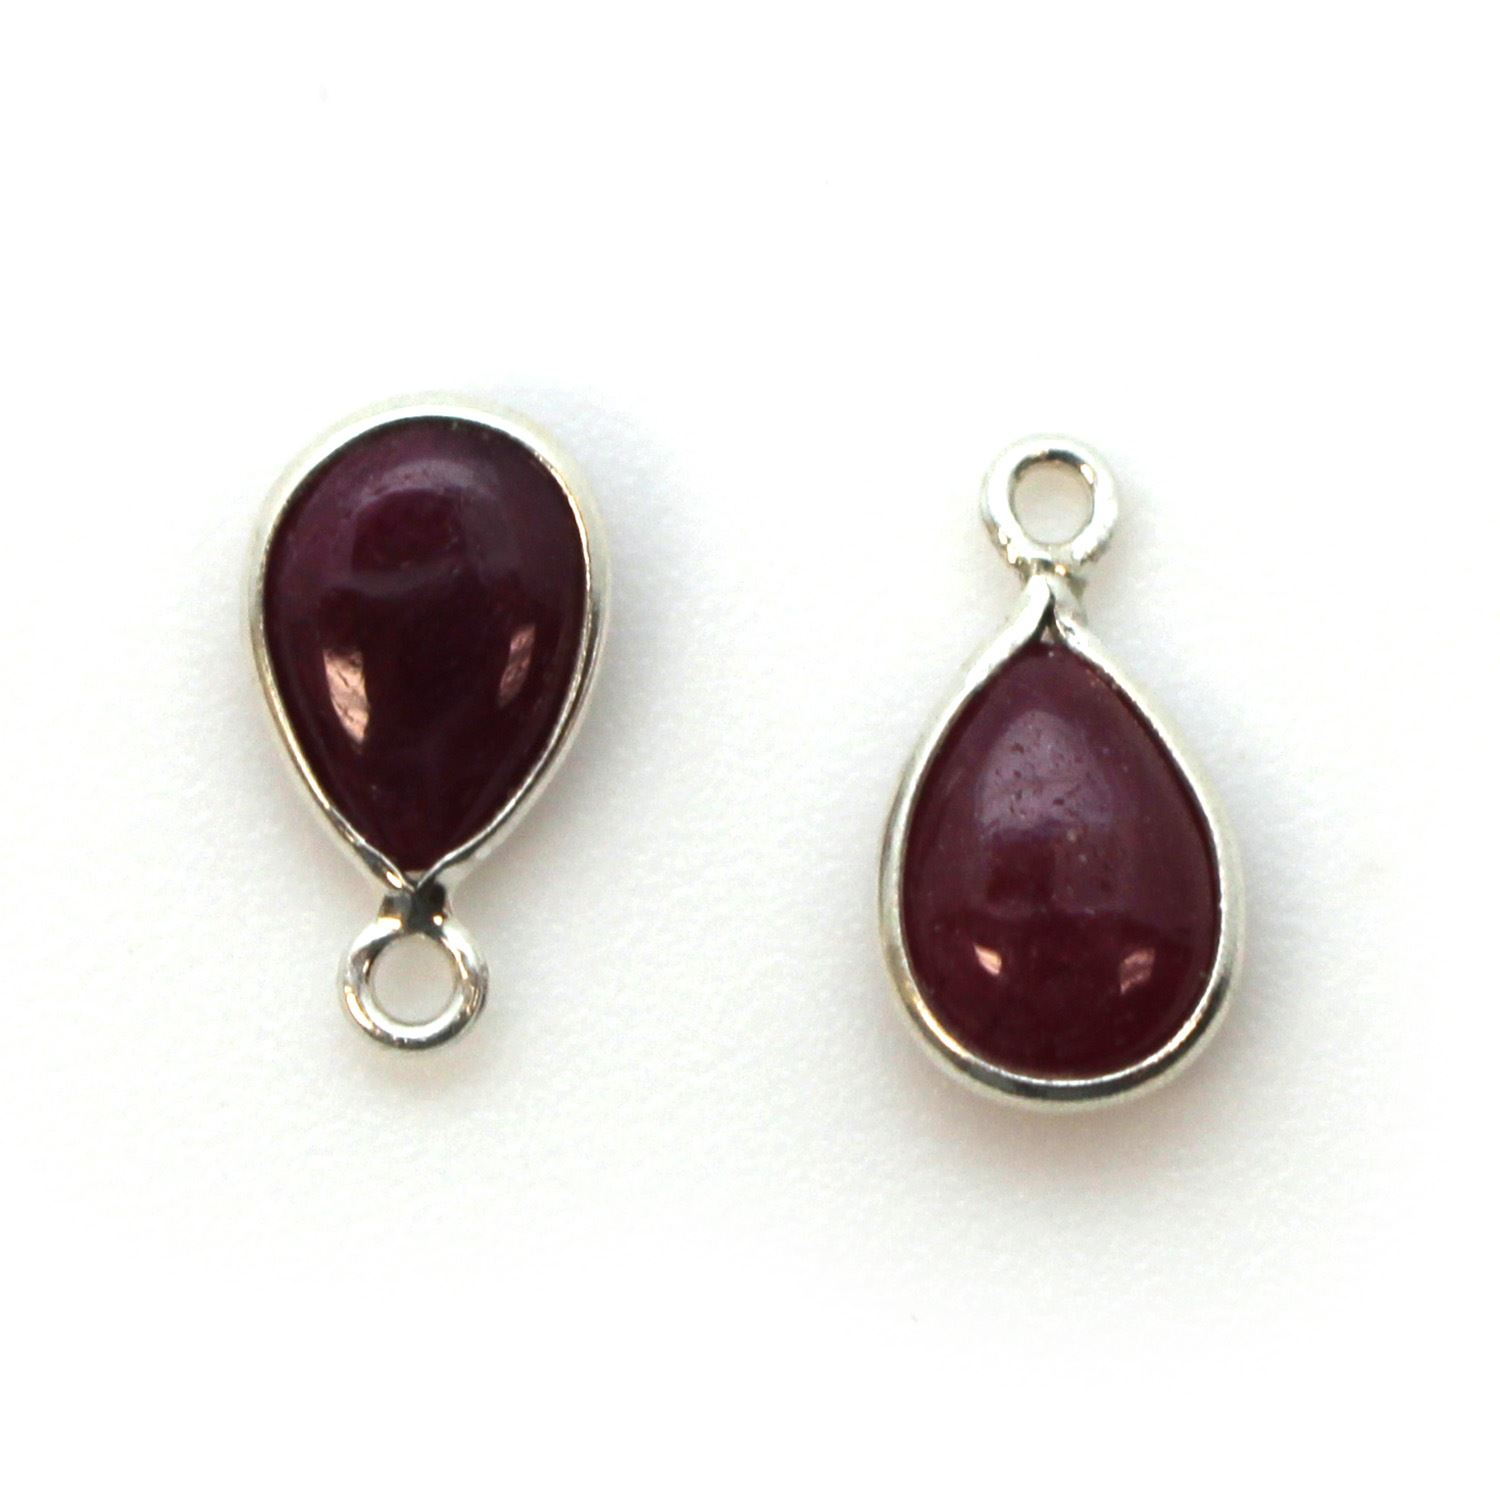 Bezel Charm Pendant - Sterling Silver Charm - Natural Ruby - Tiny Teardrop Shape